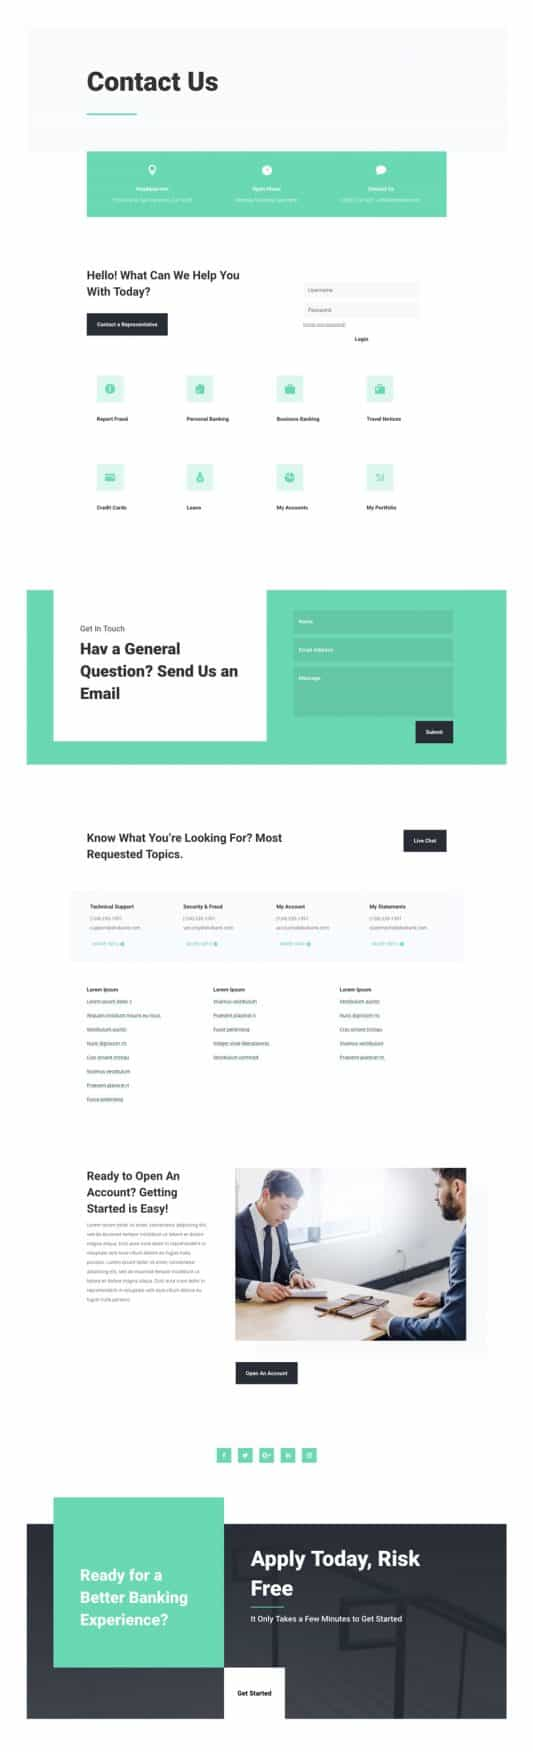 Bank Contact Page Style 1